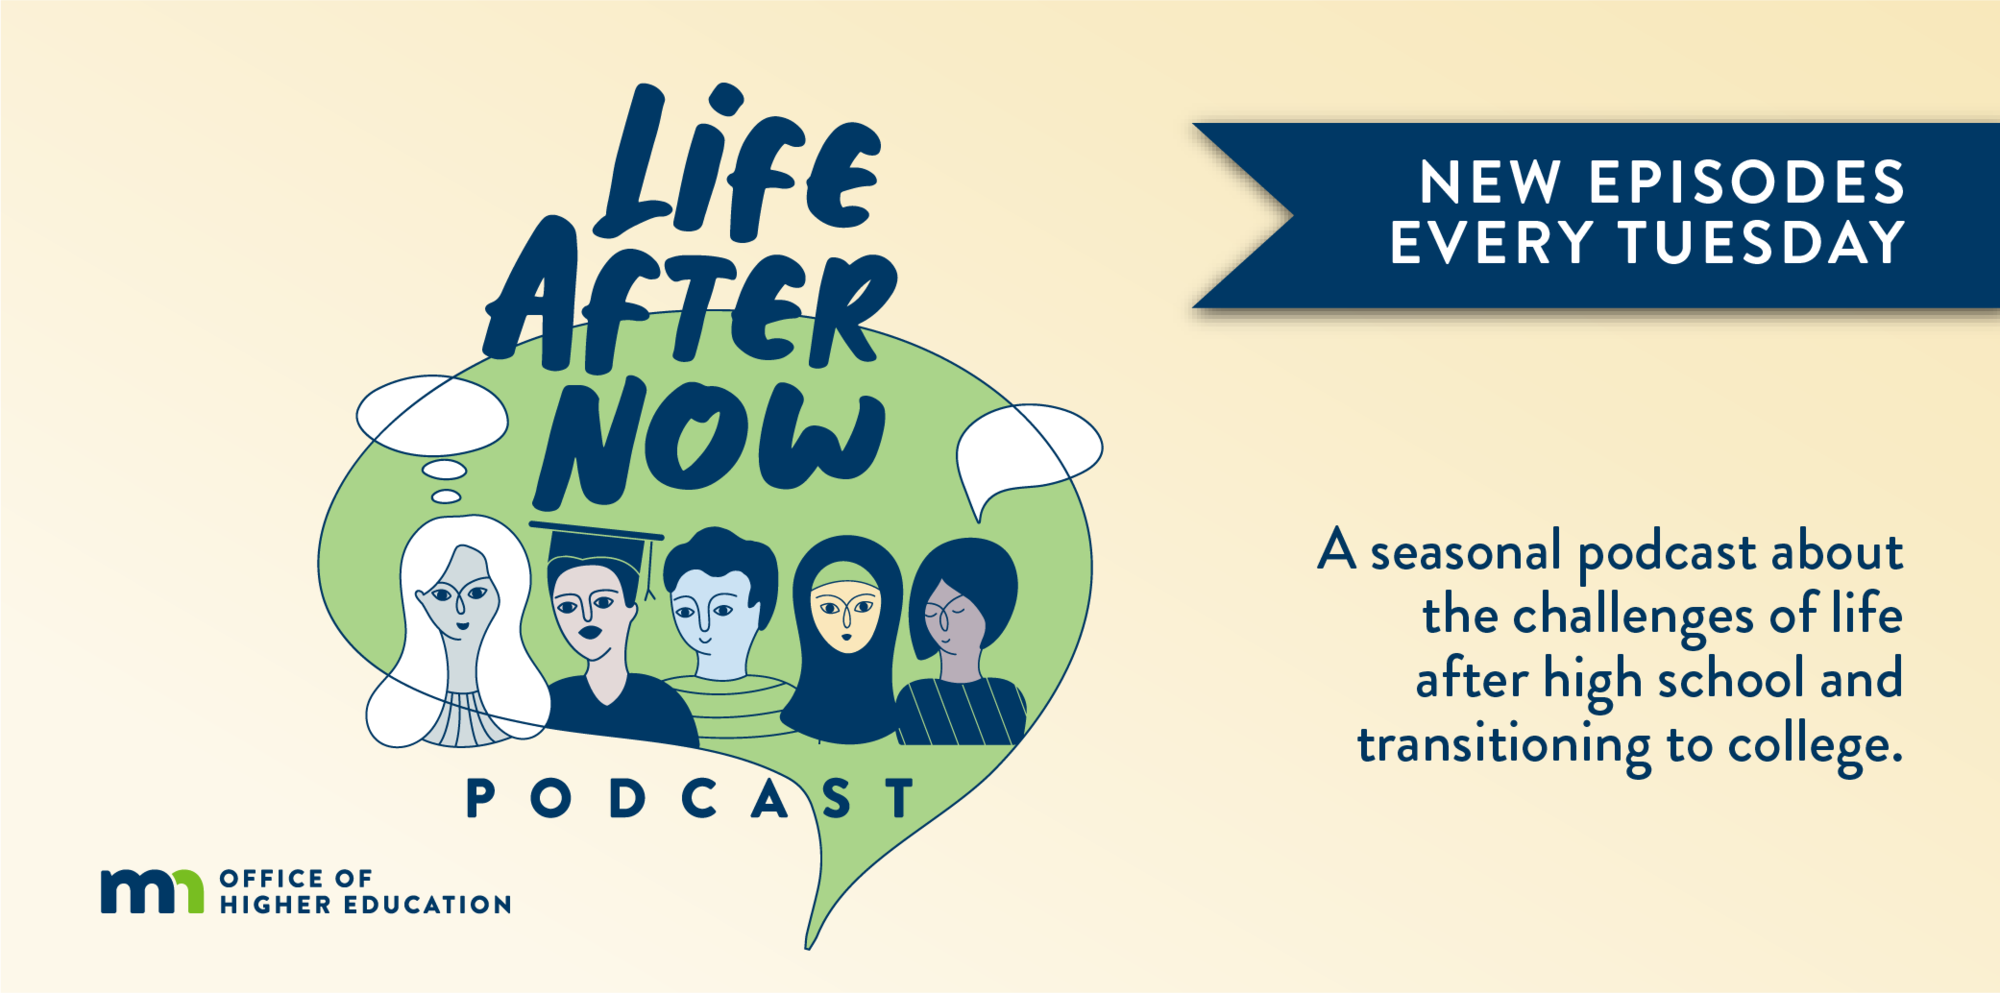 Banner: Life After Now Podcast. New episodes every Tuesday